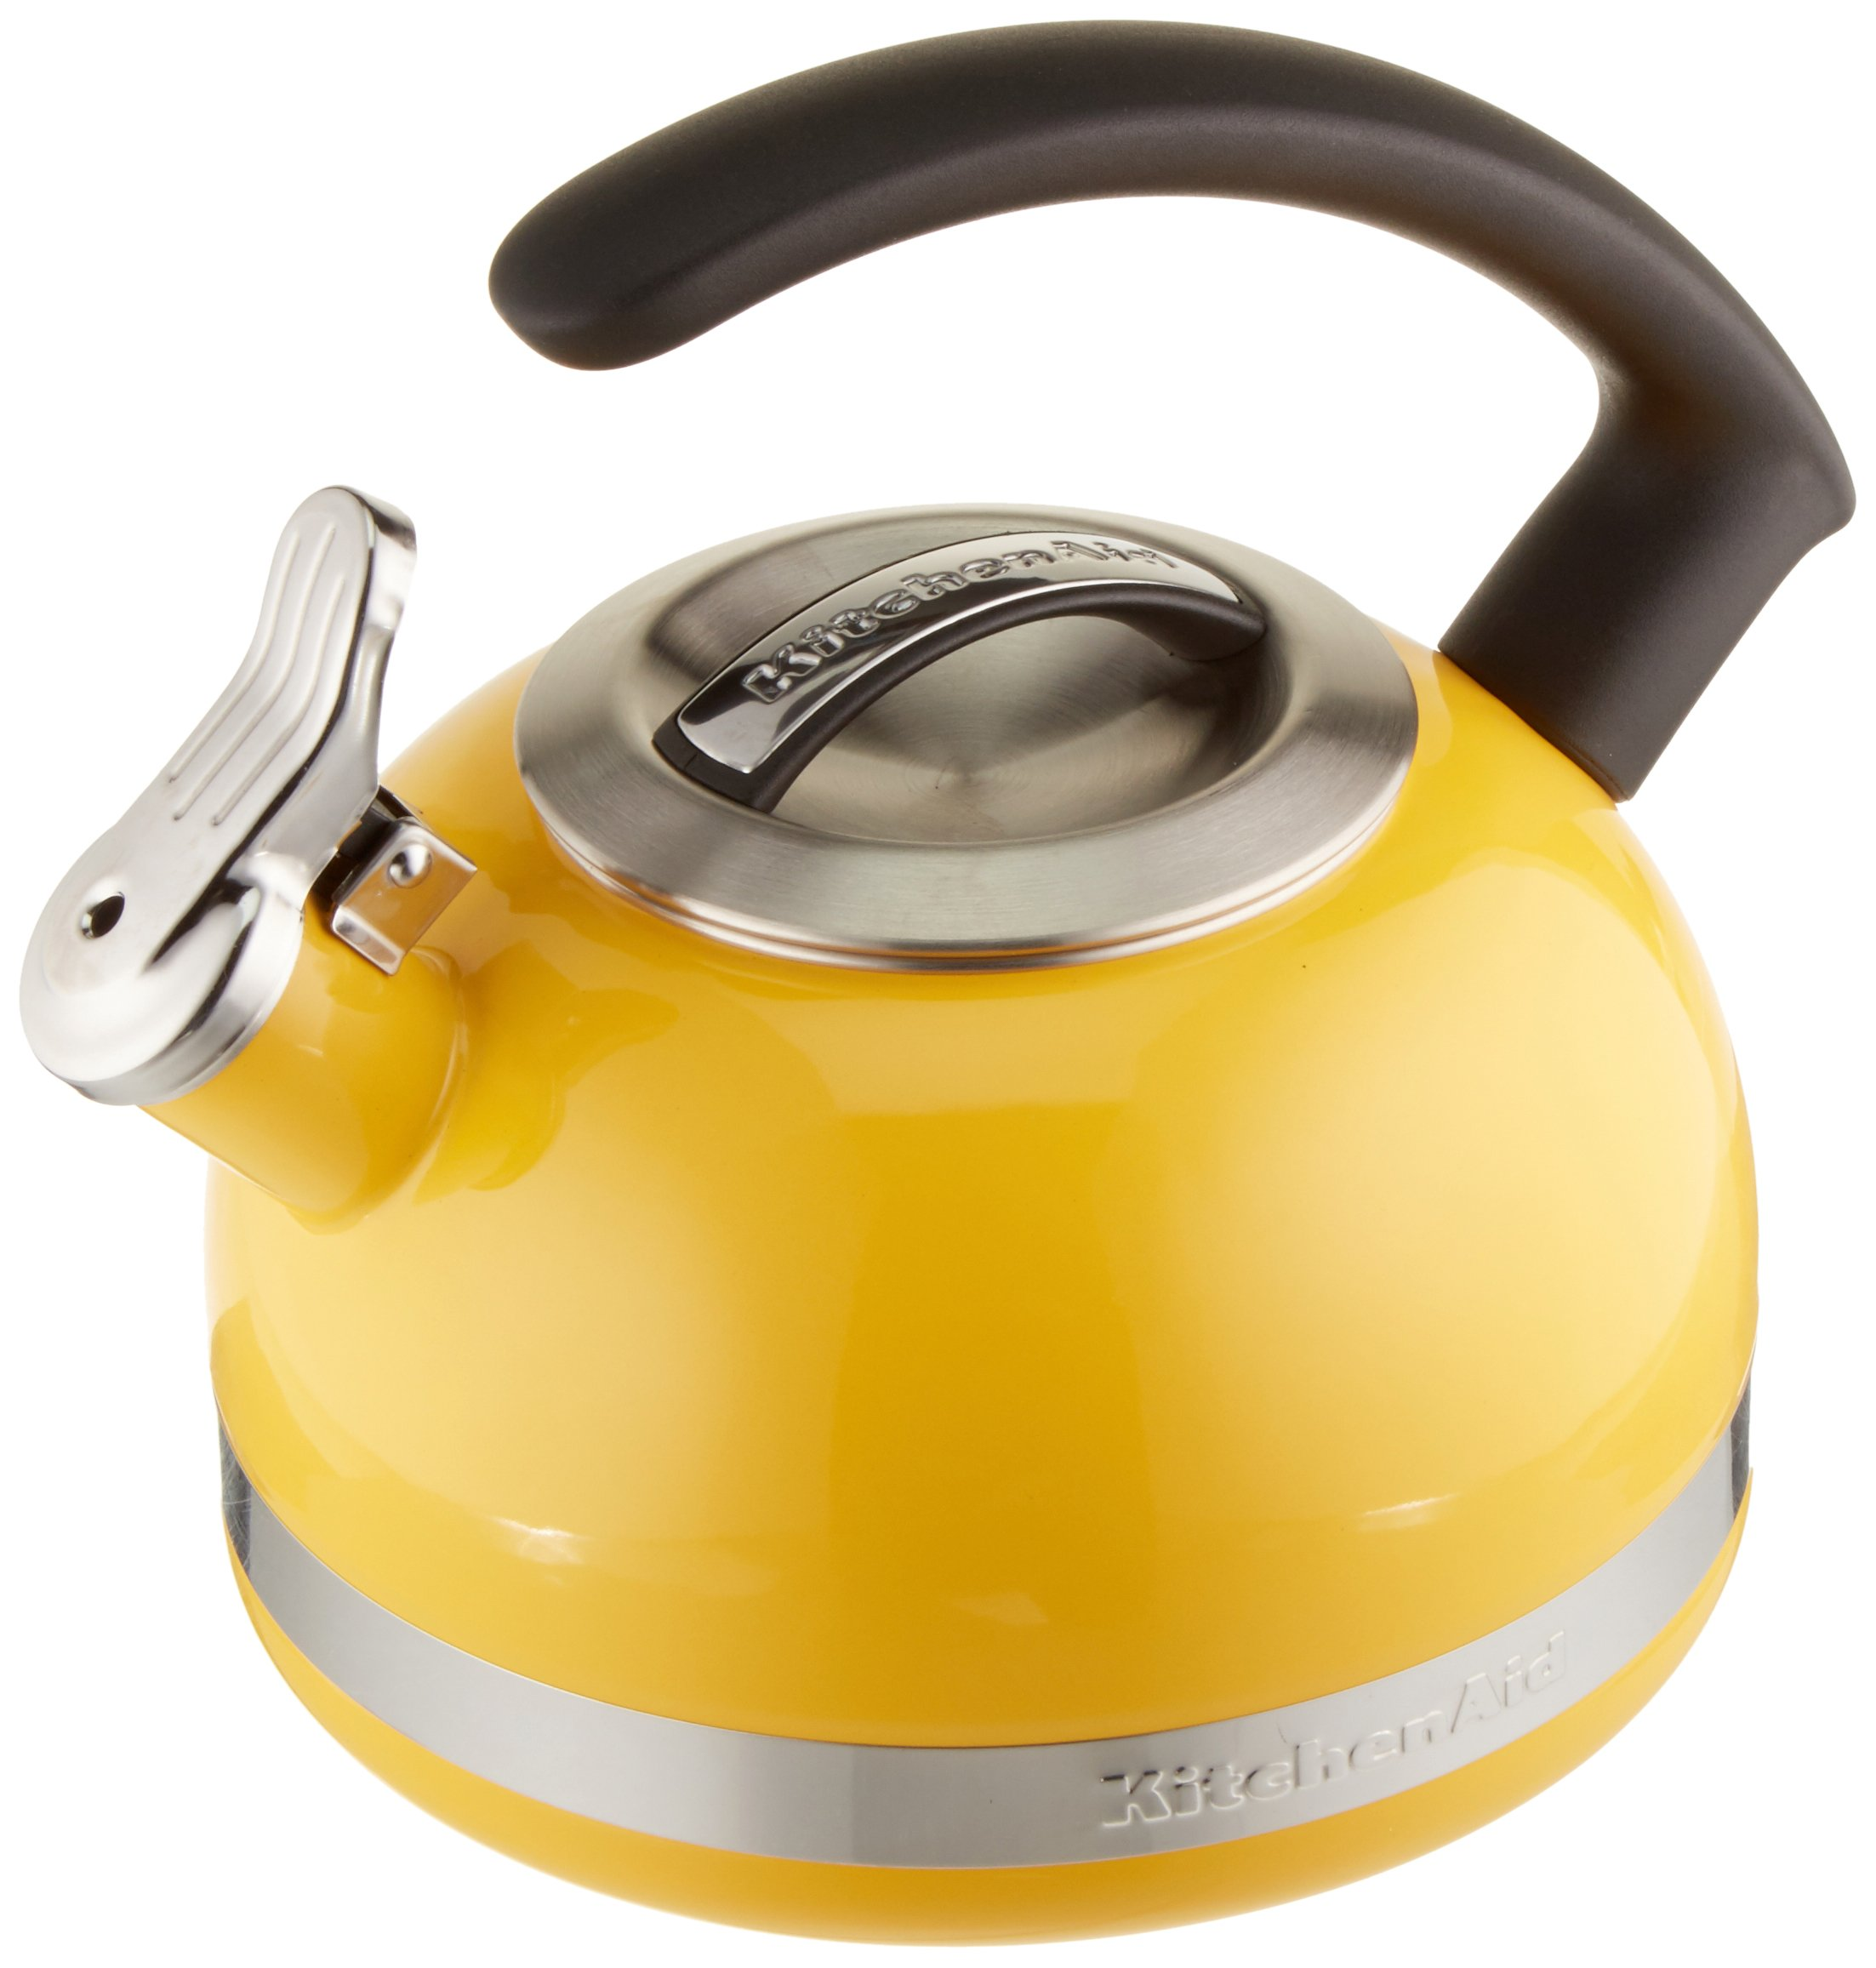 KitchenAid KTEN20CBIS 2.0-Quart Kettle with C Handle and Trim Band - Citrus Sunrise by KitchenAid